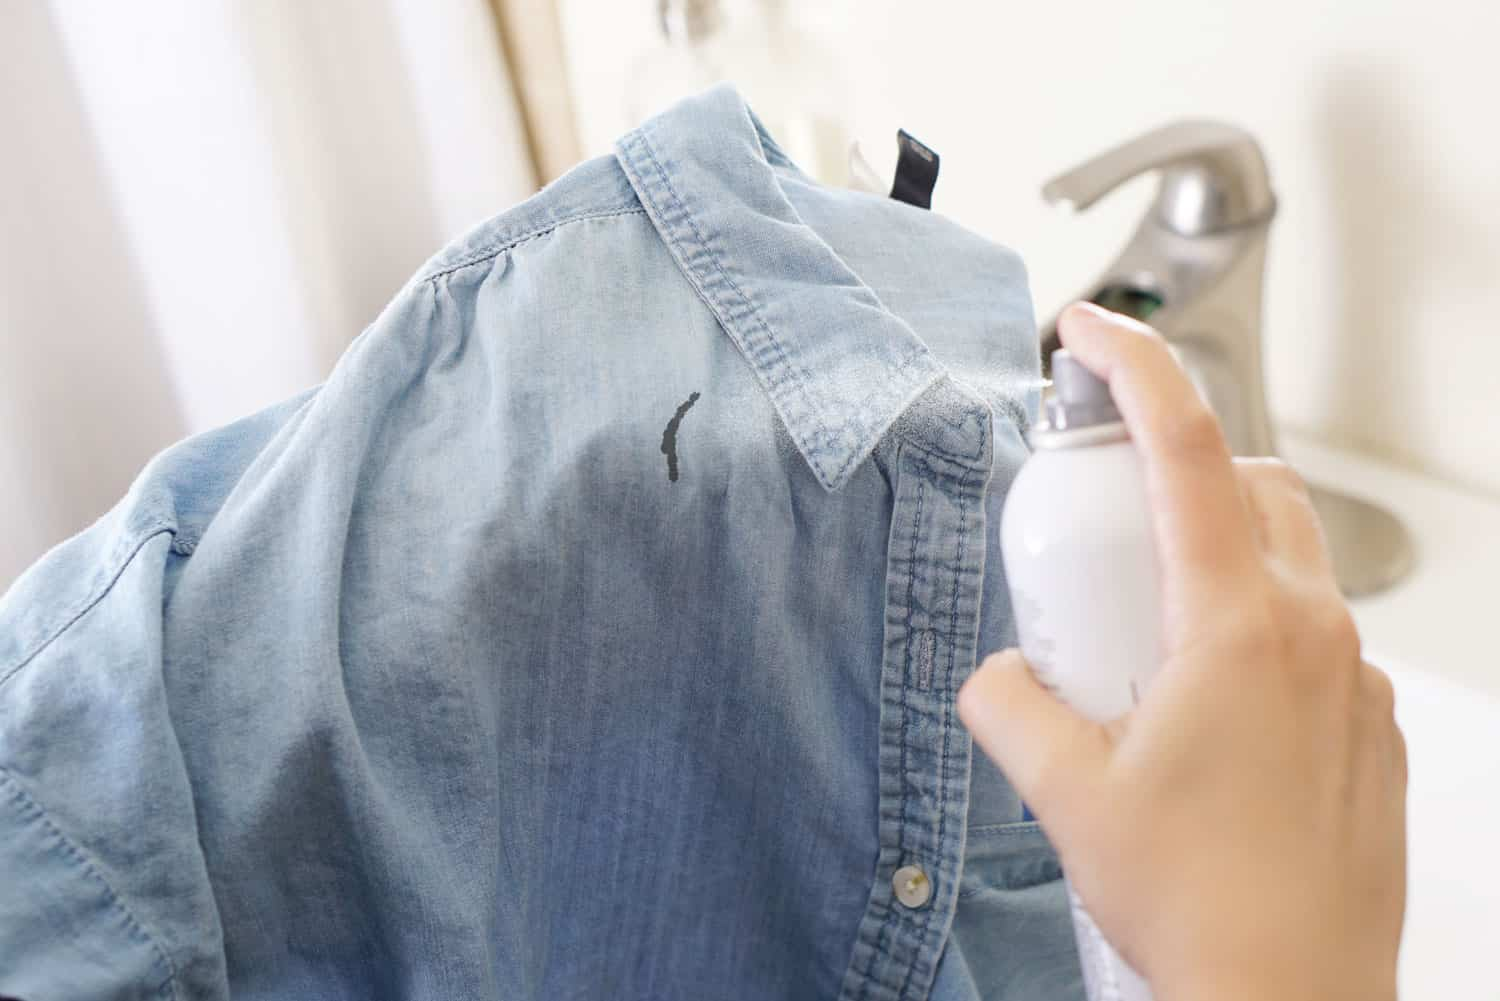 using hairspray to remove a stain from a shirt